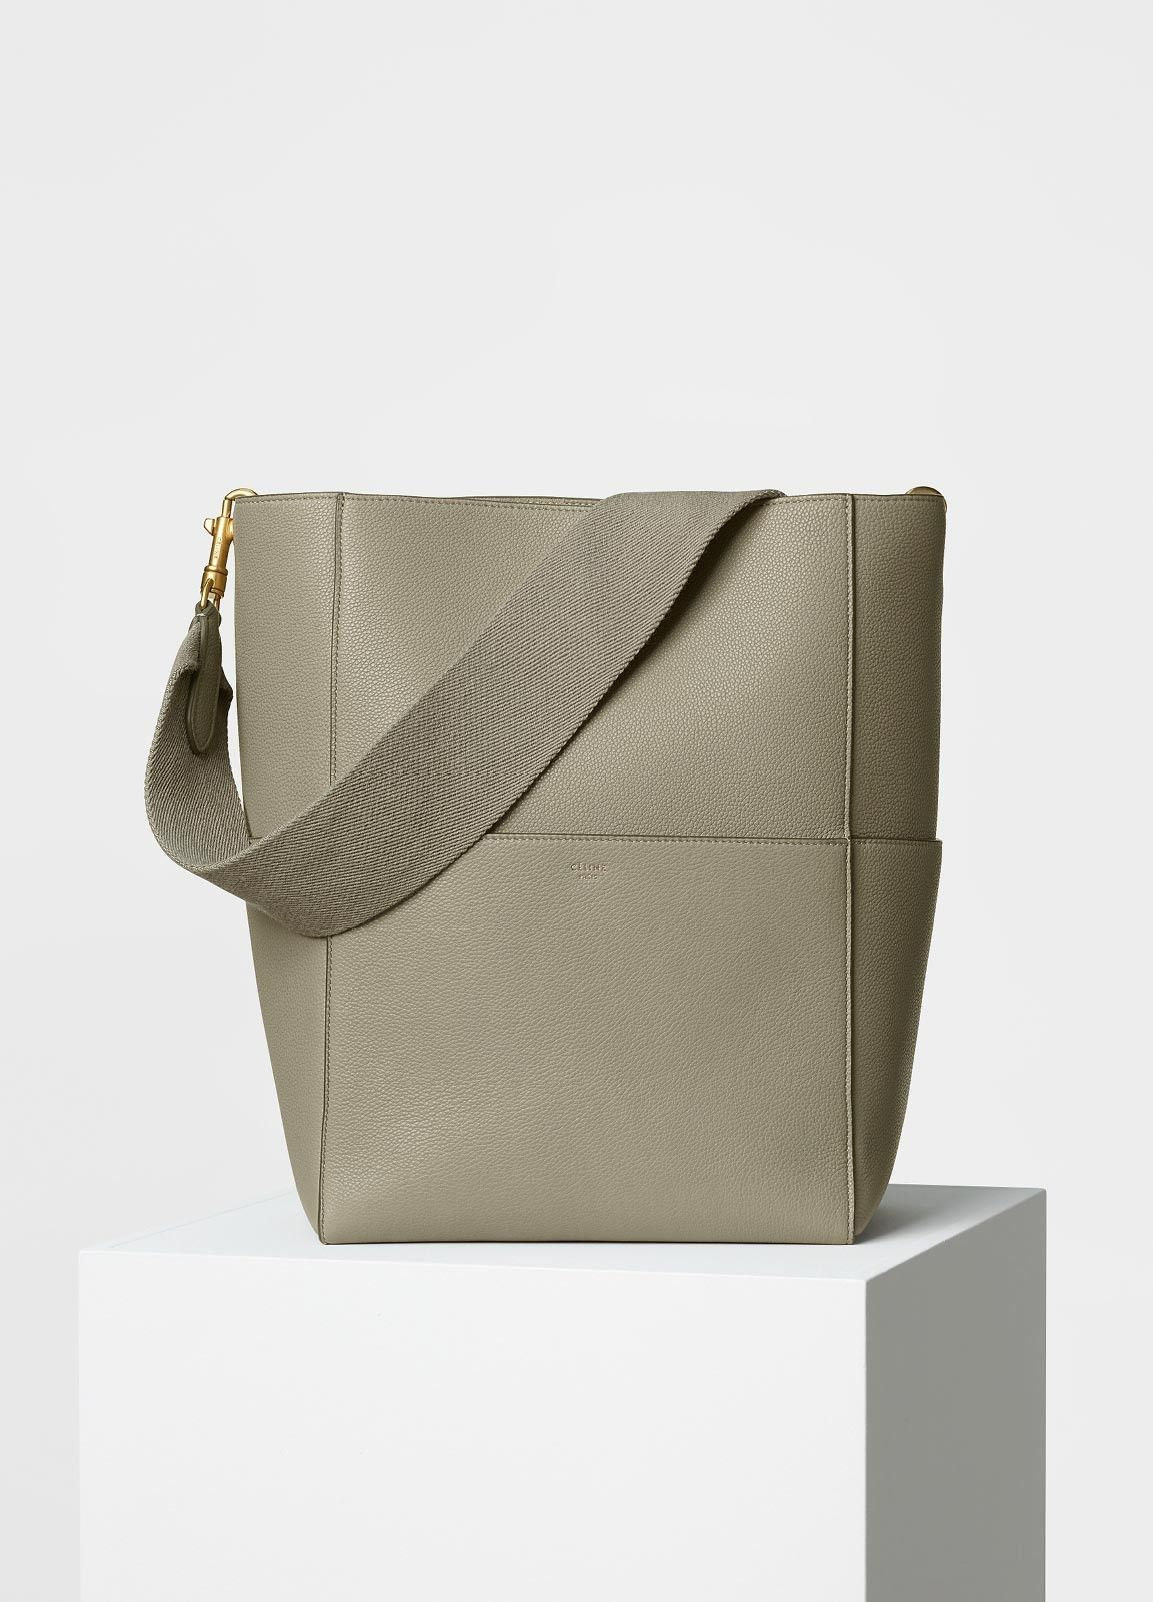 Sangle Shoulder Bag in Soft Grained Calfskin - Céline